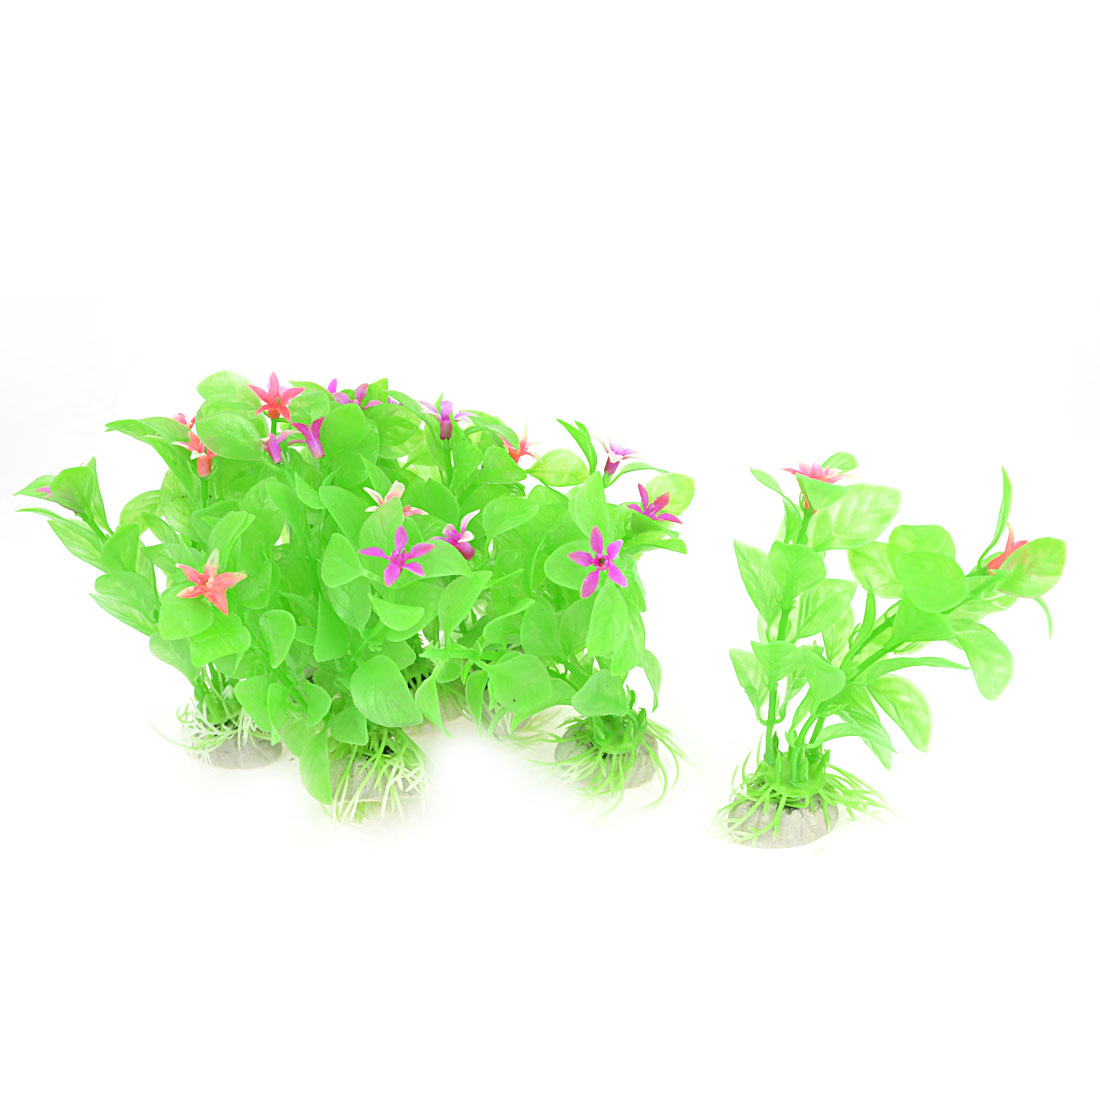 Aquarium Tanks Decor Green Plastic Emulational Aquaric Plant Grass 10cm 10 Pcs